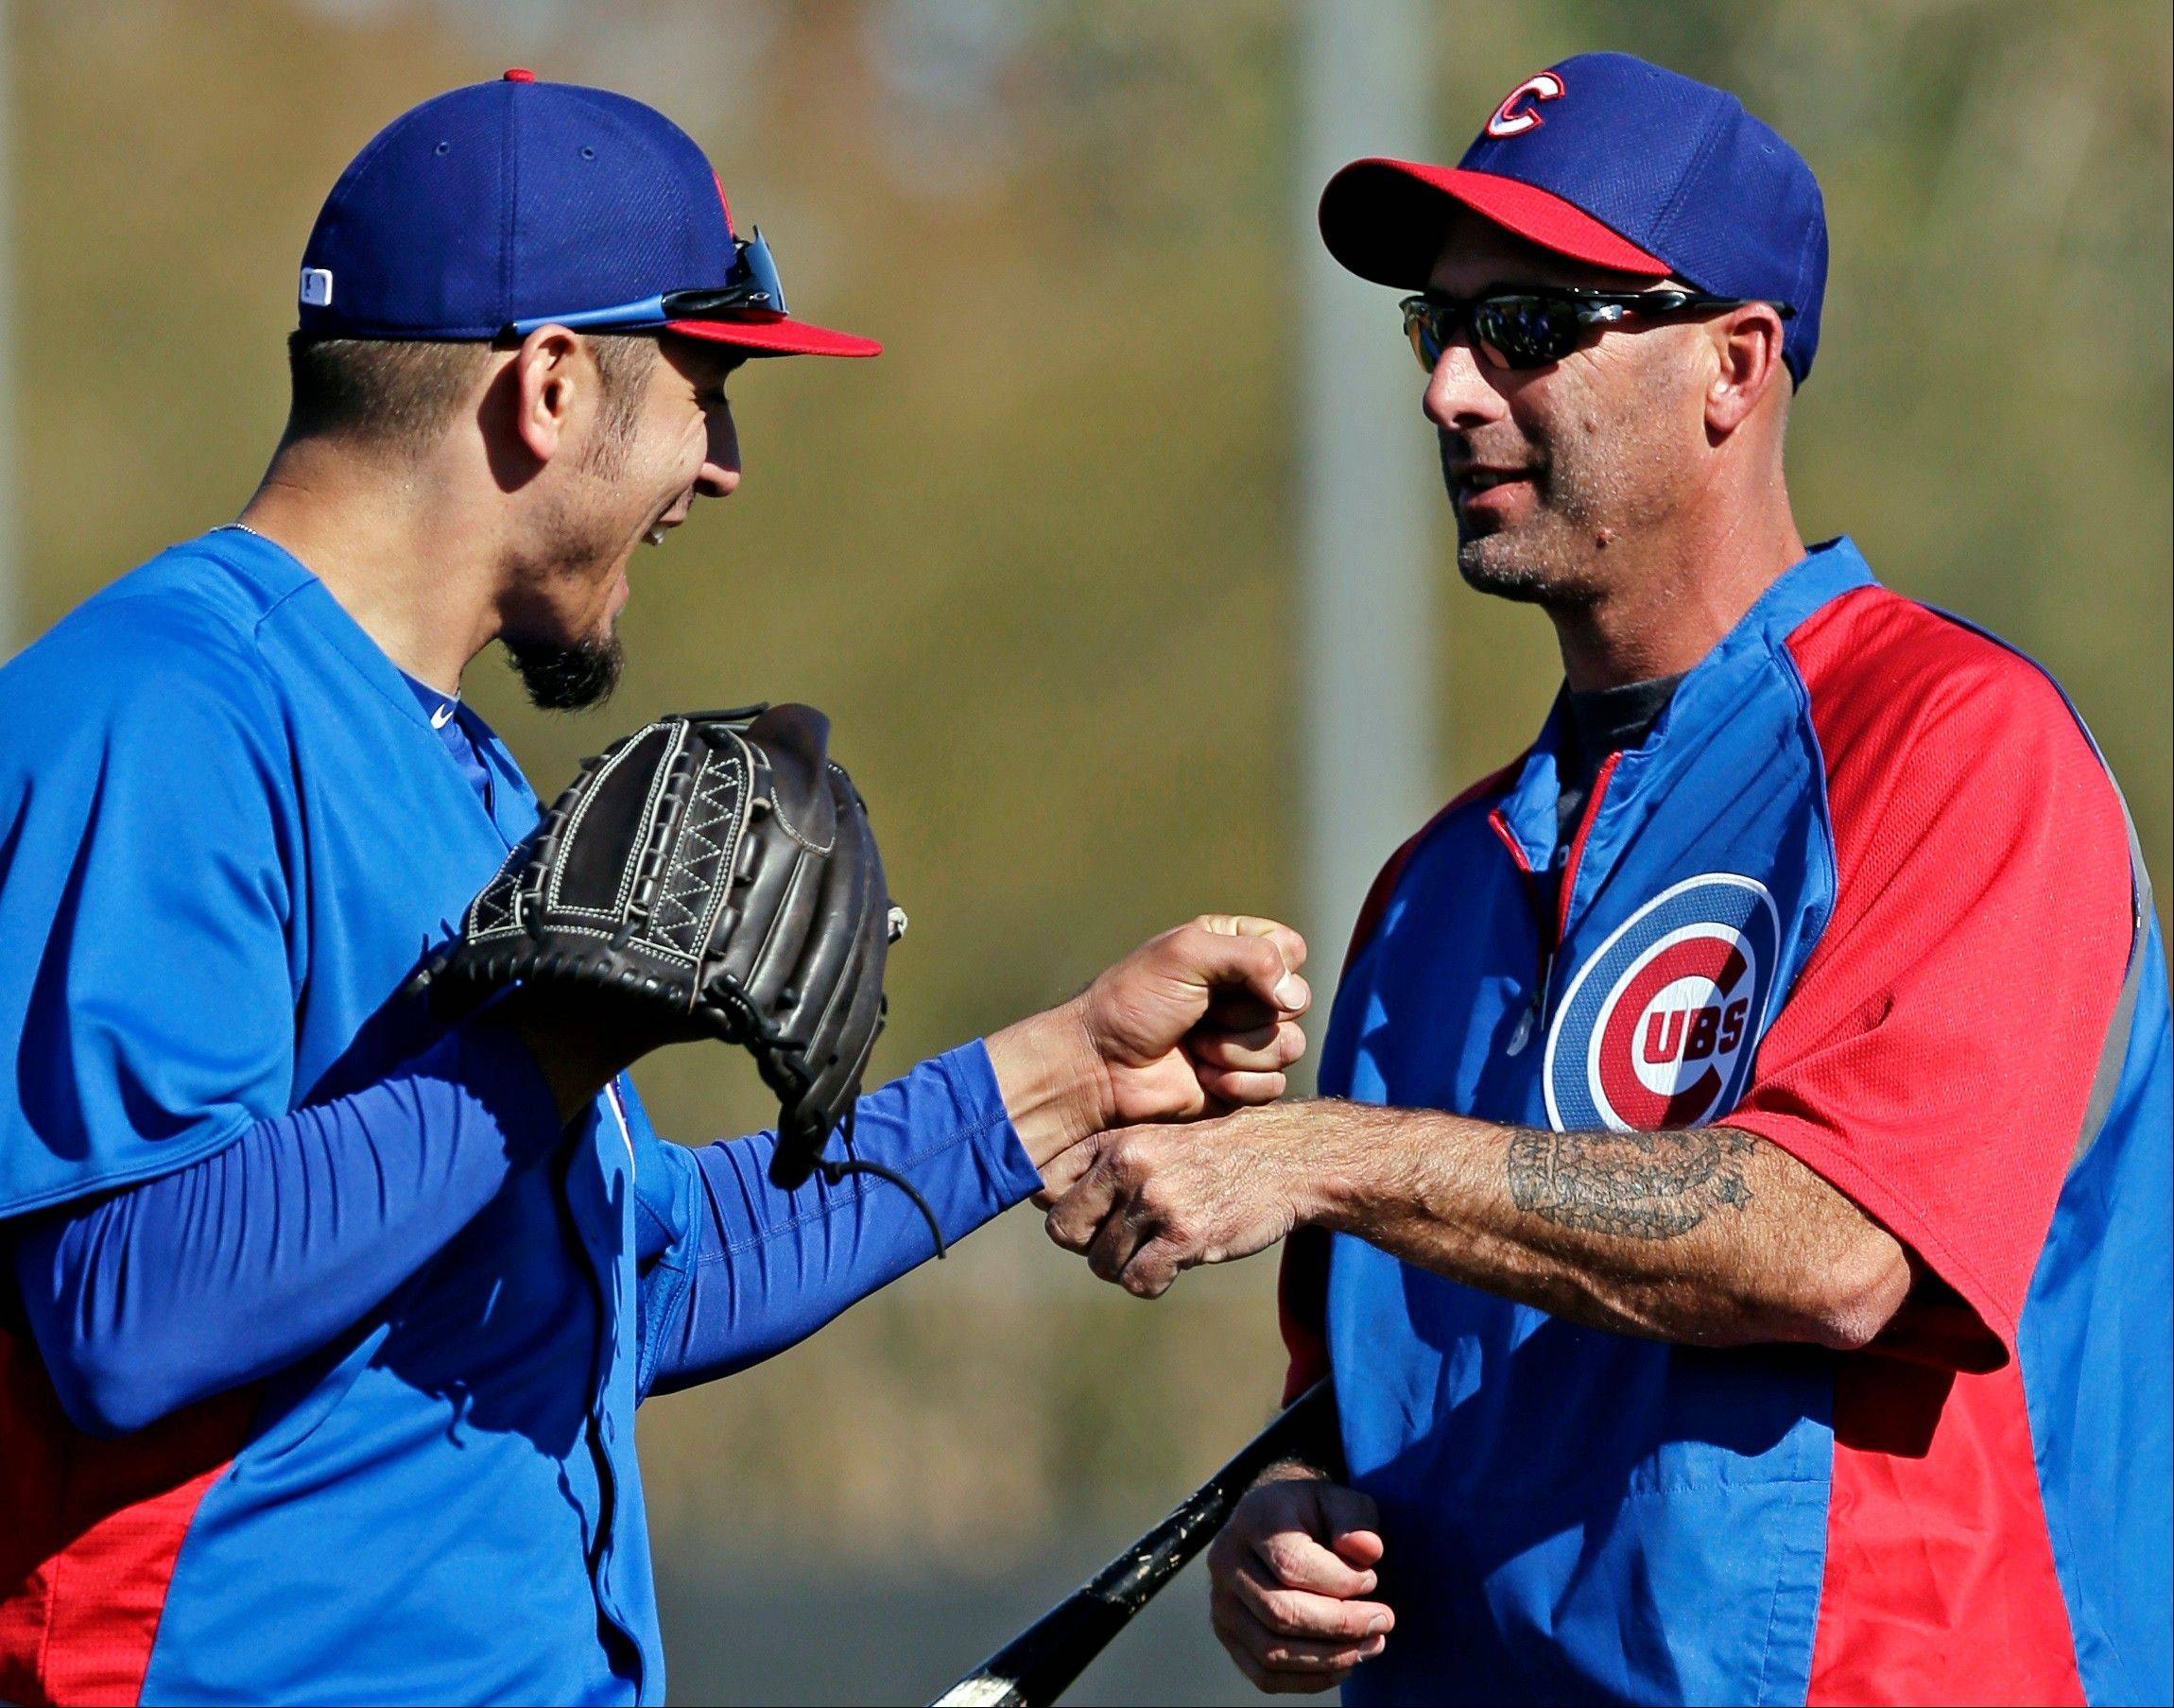 Cubs pitcher Matt Garza, shown here with manager Dale Sveum, right, will have an MRI exam on a lat muscle he strained during a batting practice session.